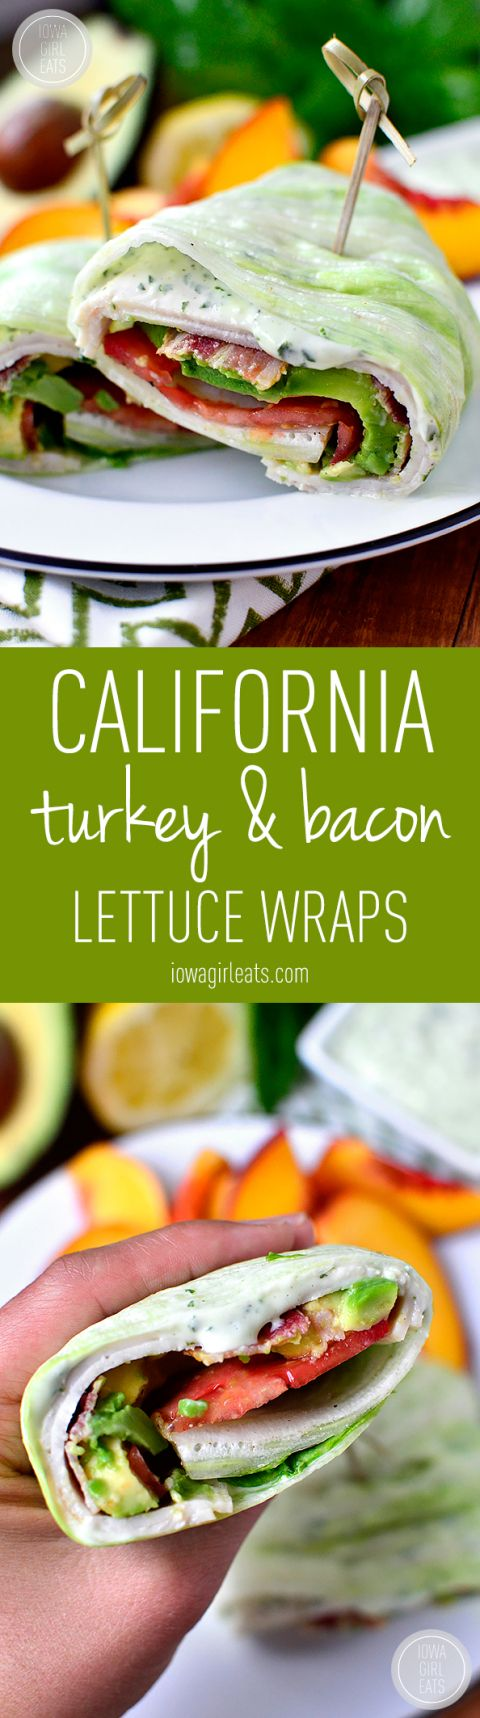 California Turkey and Bacon Lettuce Wraps with Basil-Mayo is a fresh and filling low-carb meal that comes together in minutes! #glutenfree   iowagirleats.com